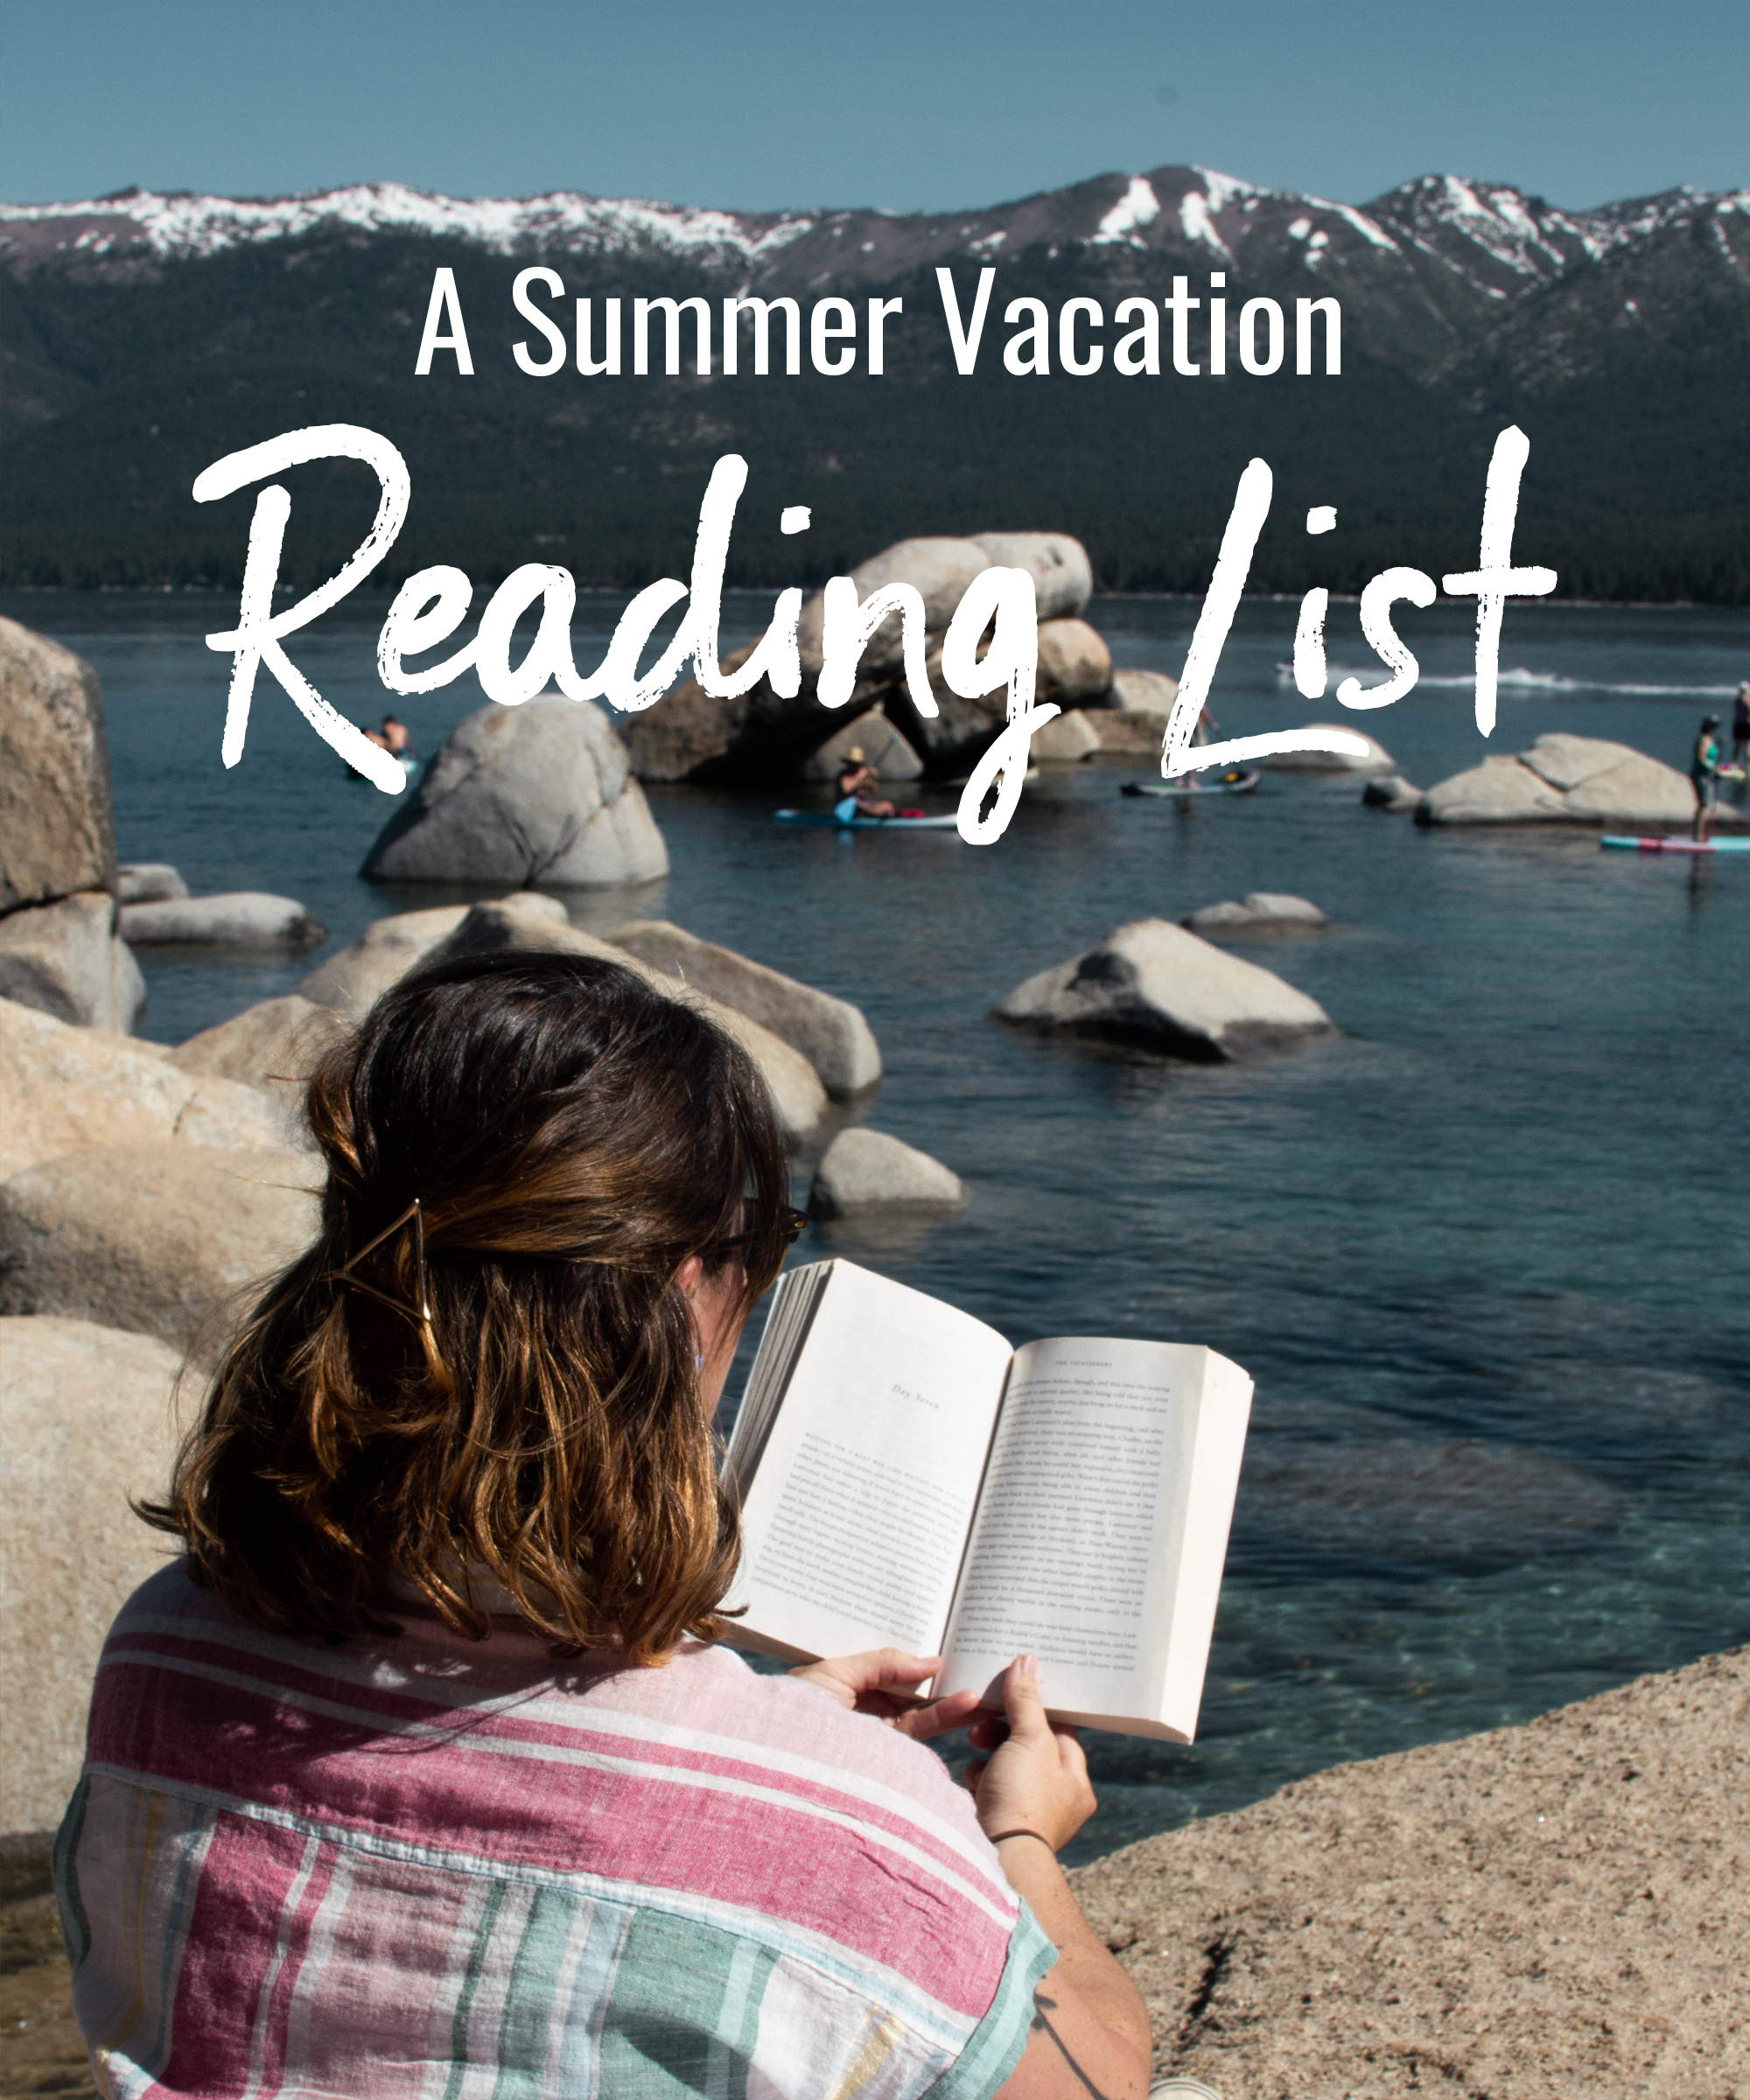 A Summer Vacation Reading List